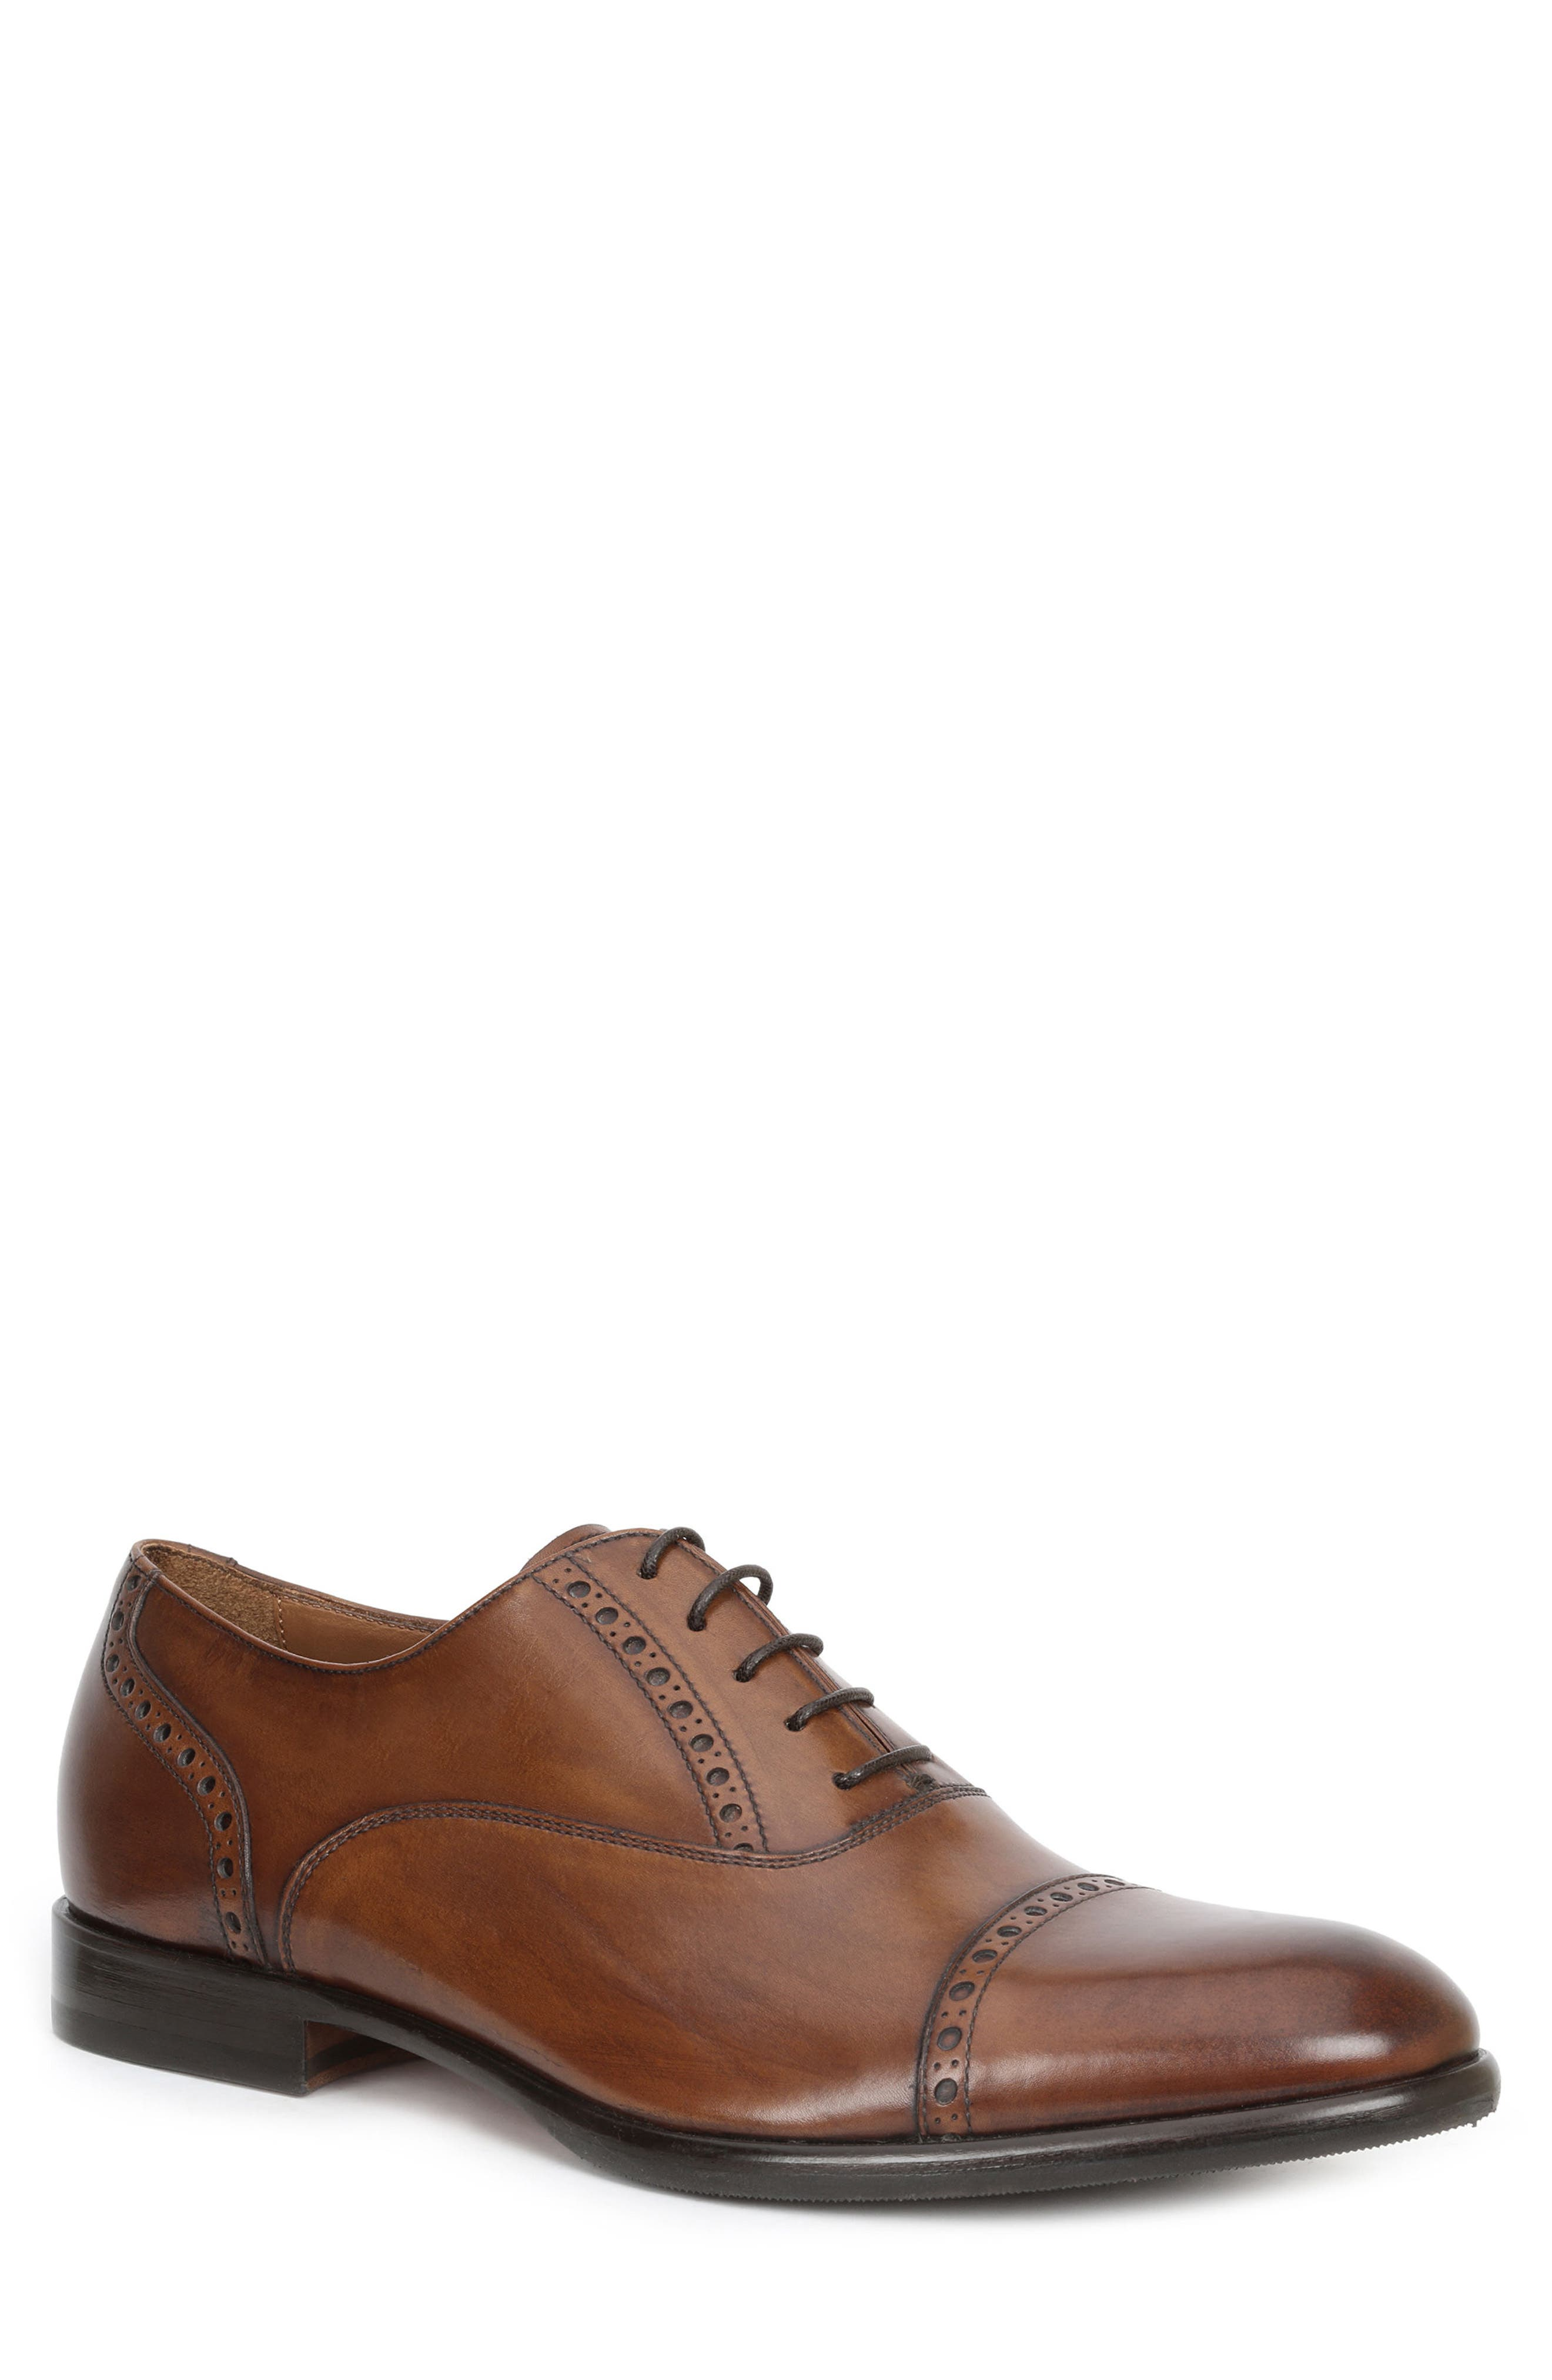 Pisa Cap Toe Oxford,                             Main thumbnail 1, color,                             Cognac